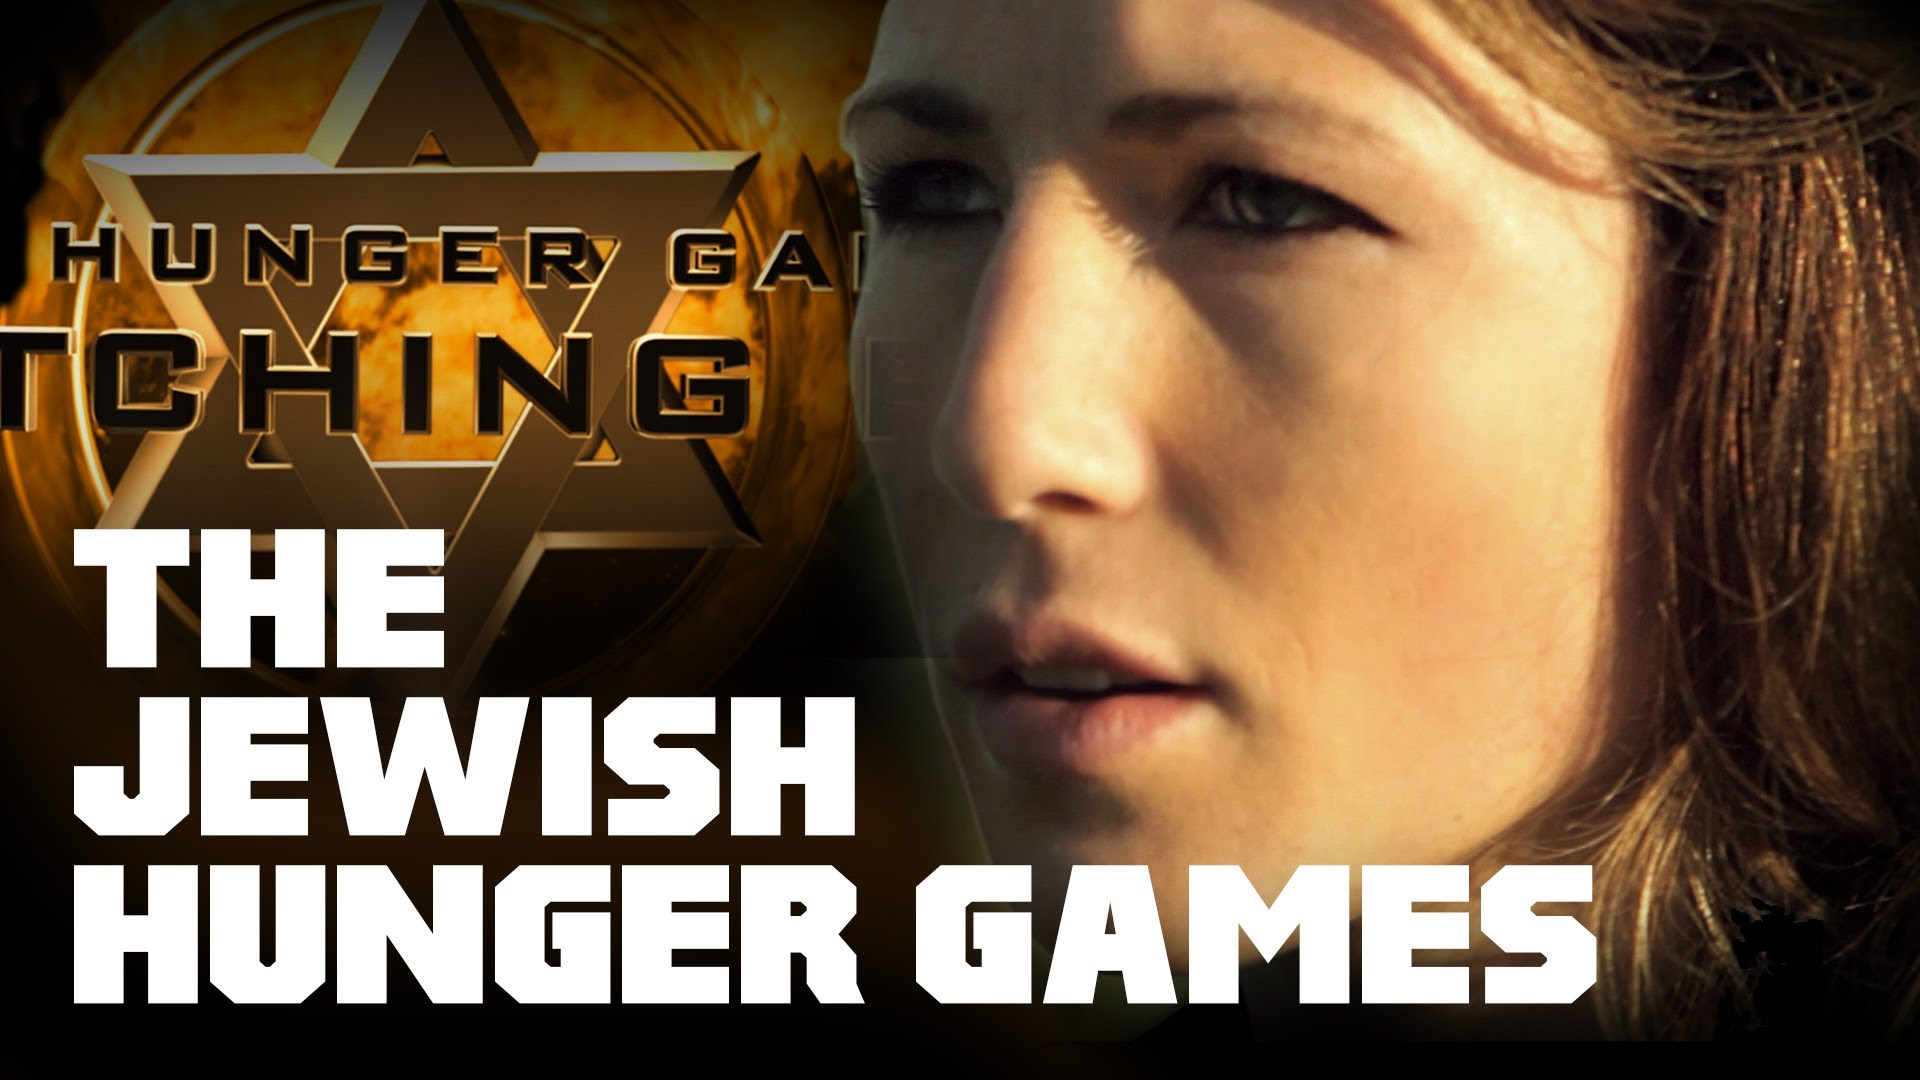 The jewish hunger games kvetching fire a parody movie trailer of the jewish hunger games kvetching fire a parody movie trailer of the hunger games catching fire voltagebd Gallery